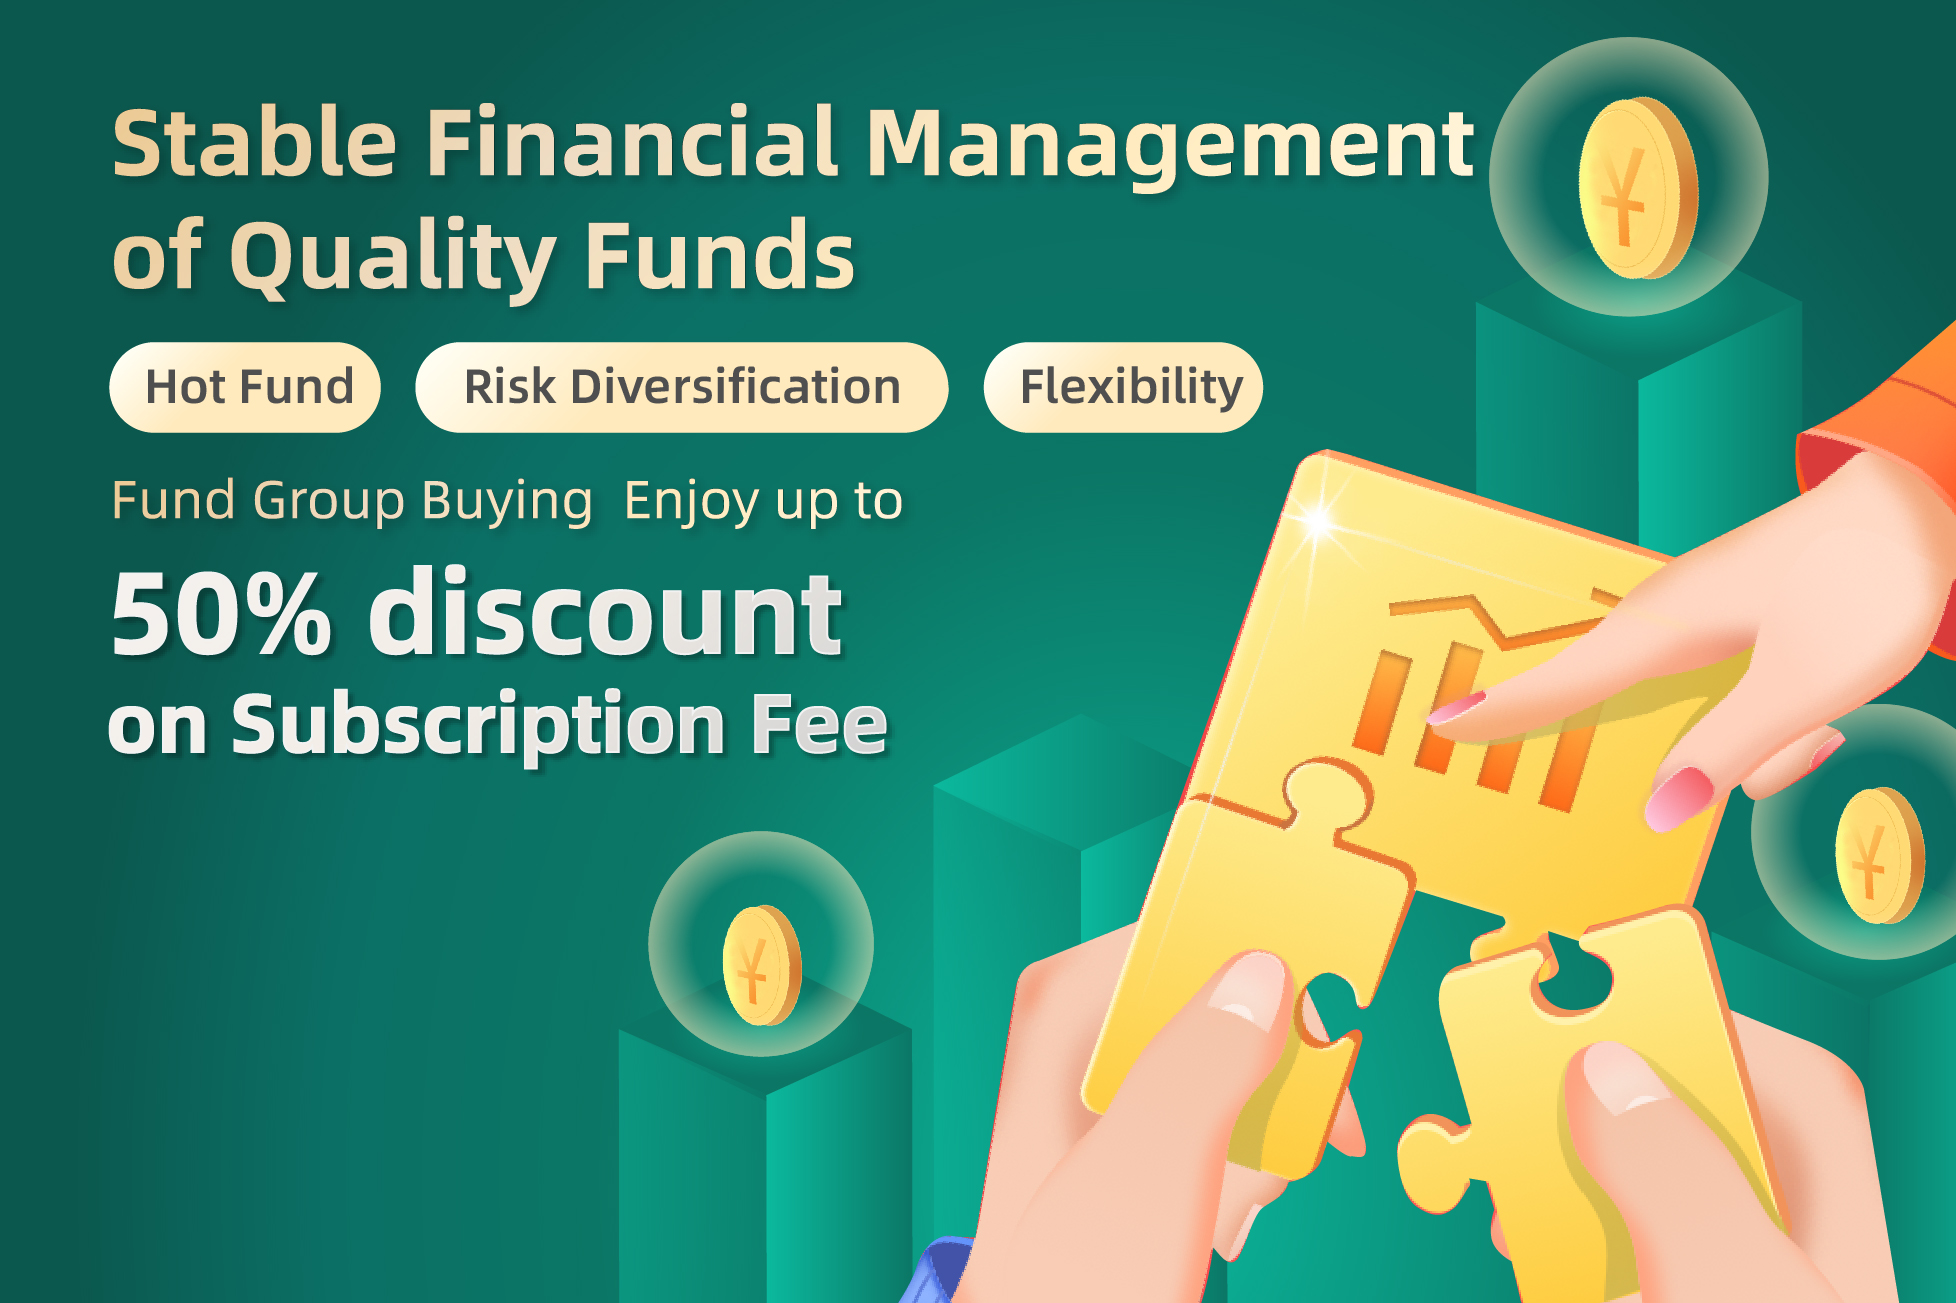 Fund Group Buying Discount; Enjoy Up to 50% discount on Fund Sub. Fee*